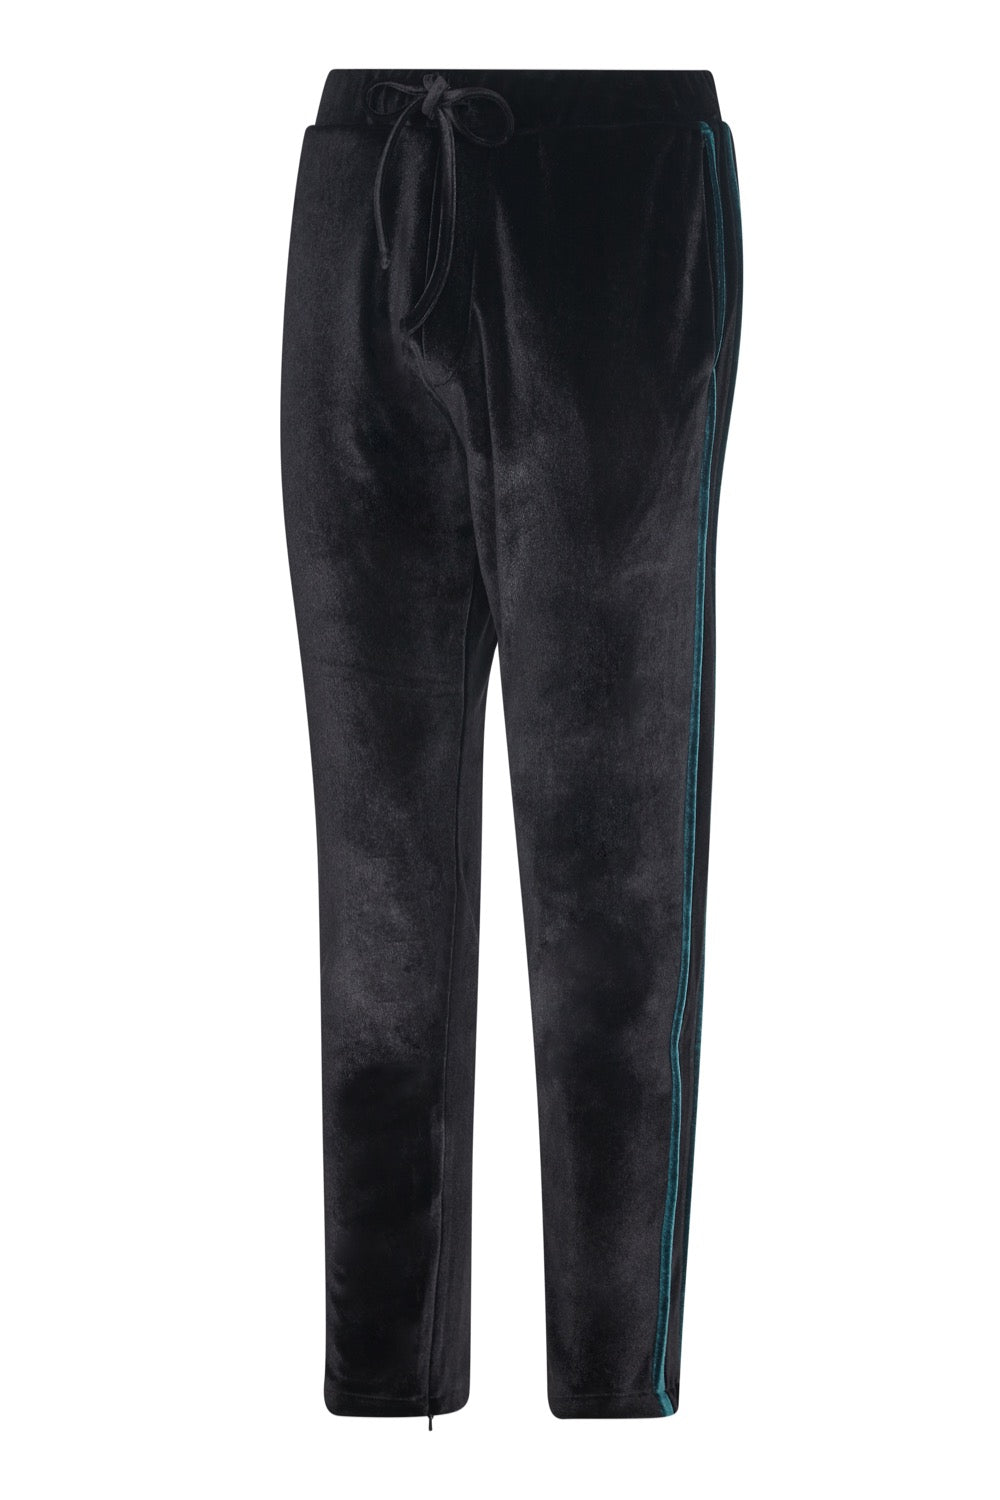 GROVE COURT BLACK VELVET TRACK PANT